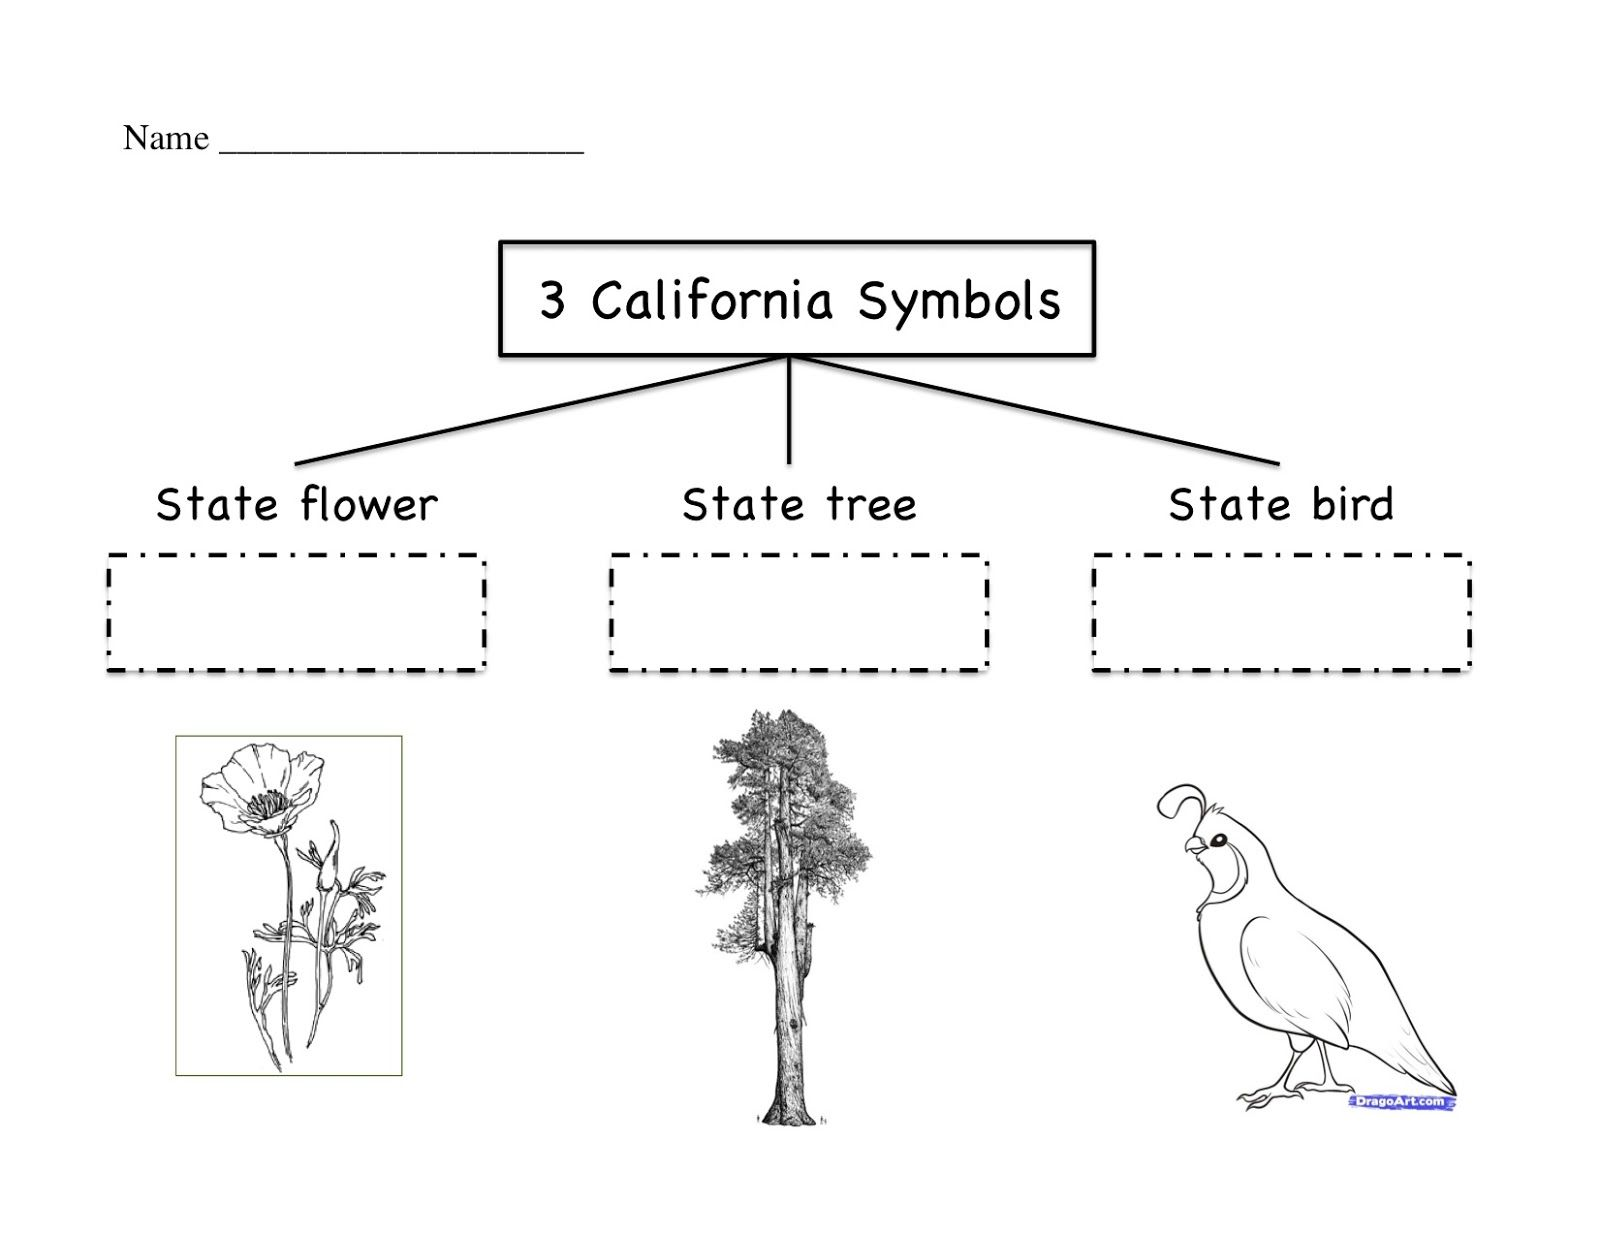 Worksheets American Symbols Worksheet free worksheet labeling the california symbols kinder learning garden blog